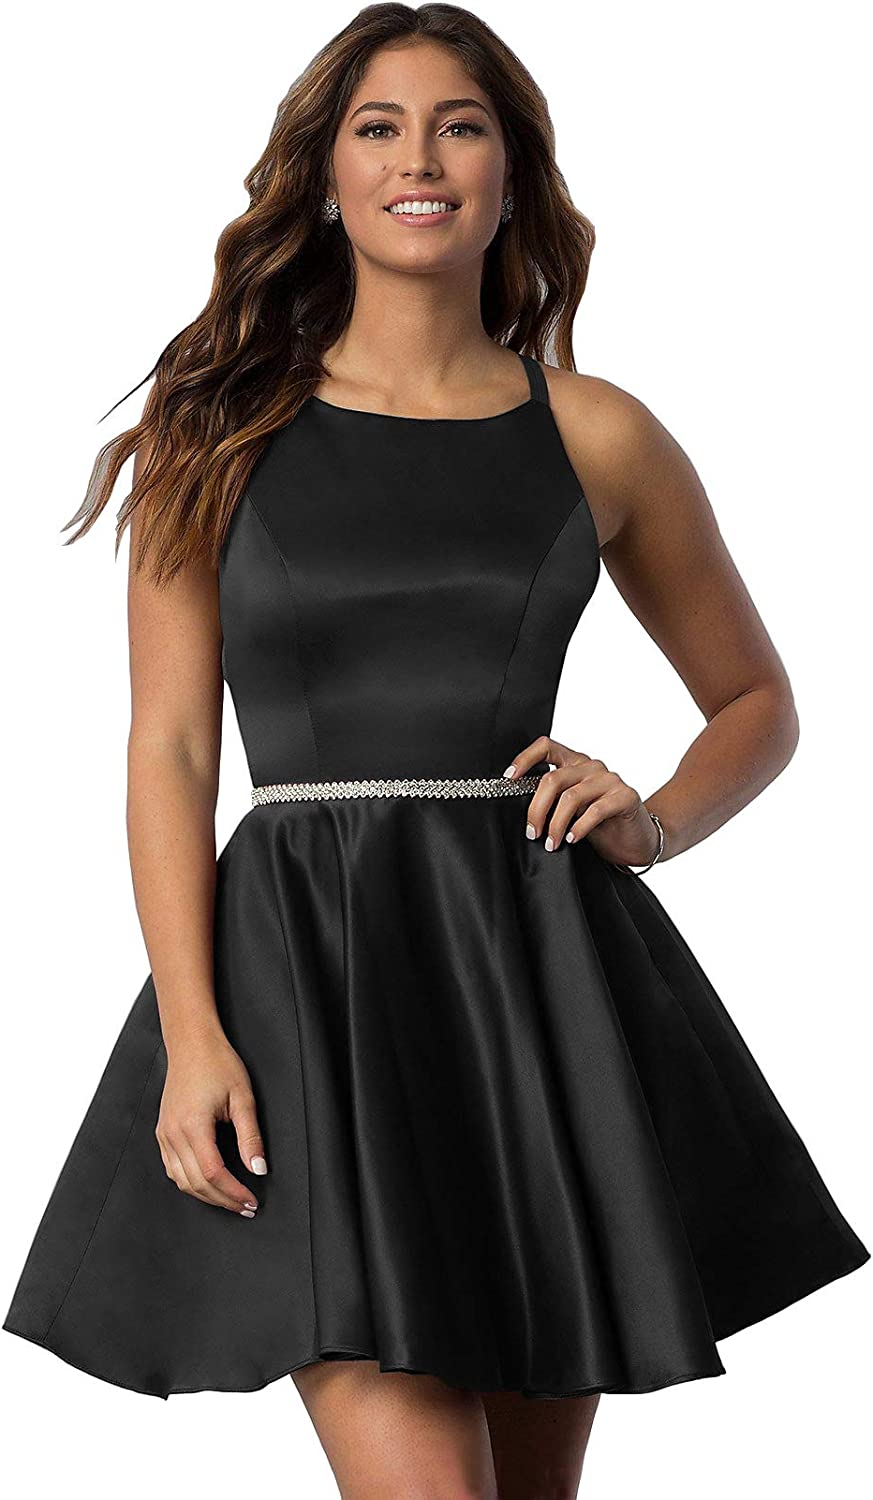 YGSY Women's Scoop Neck Satin Prom Max 76% OFF Dress Homecoming Short Be super welcome Dresse